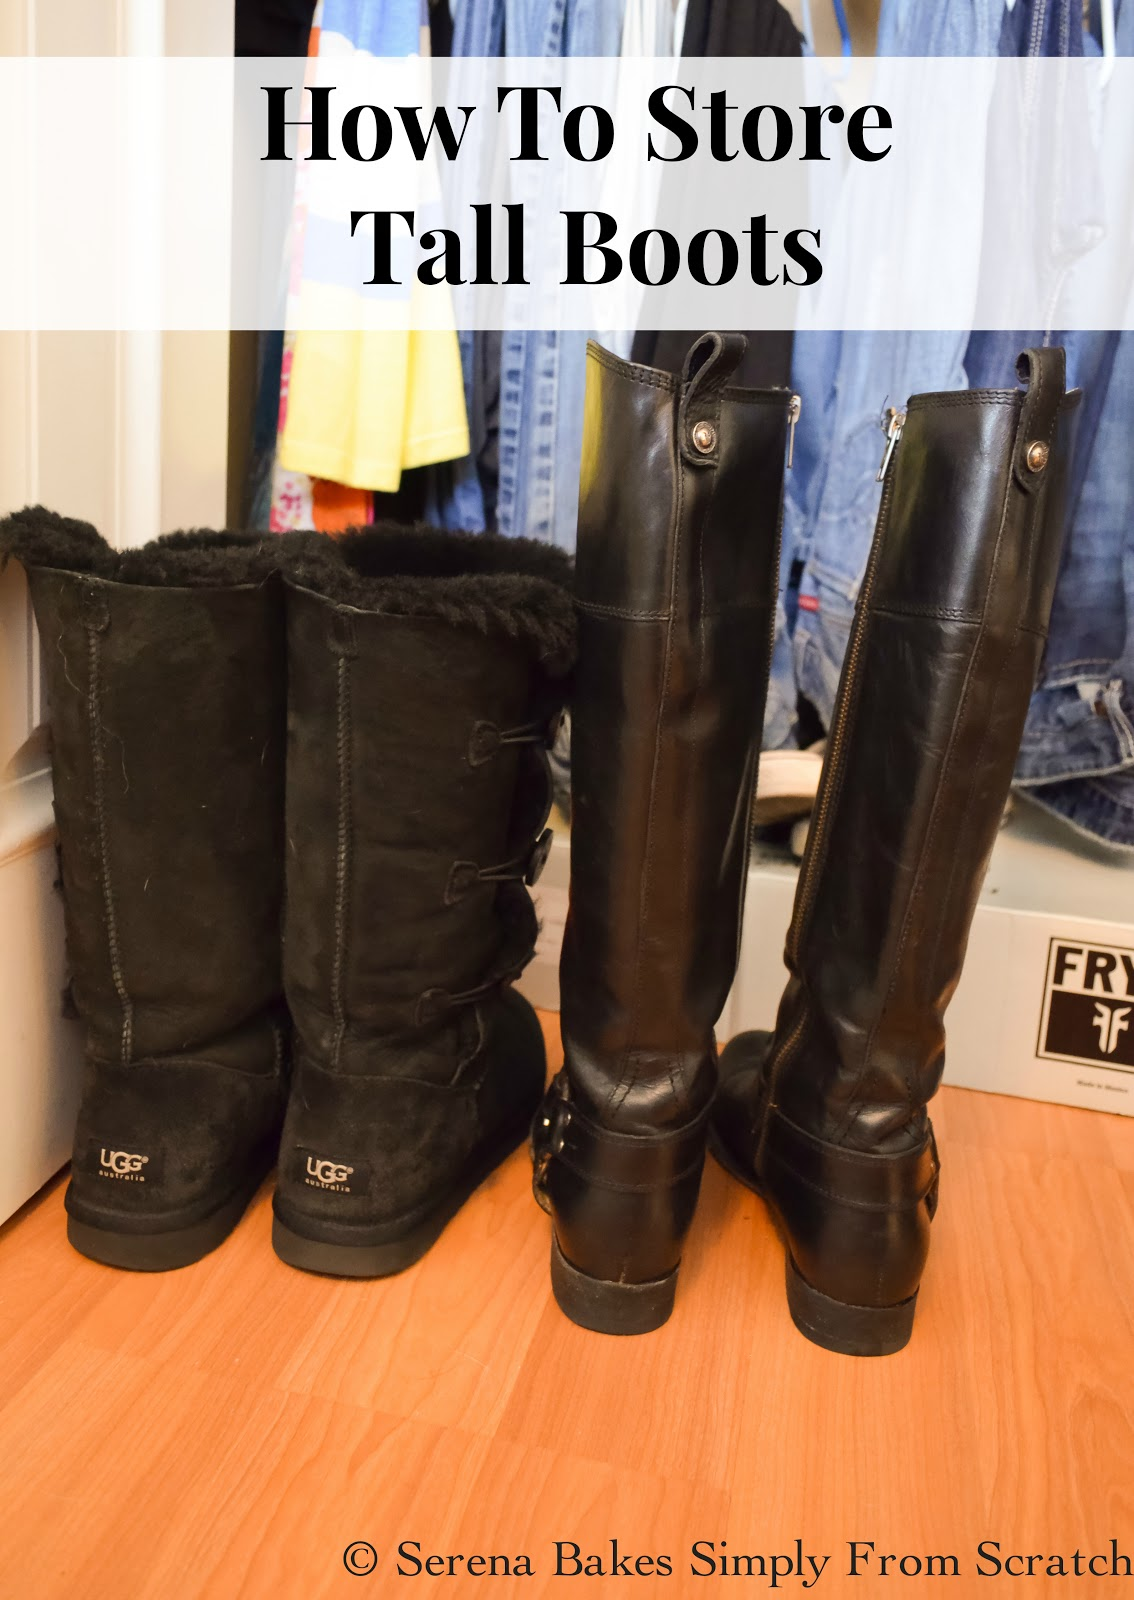 How To Store Tall Boots